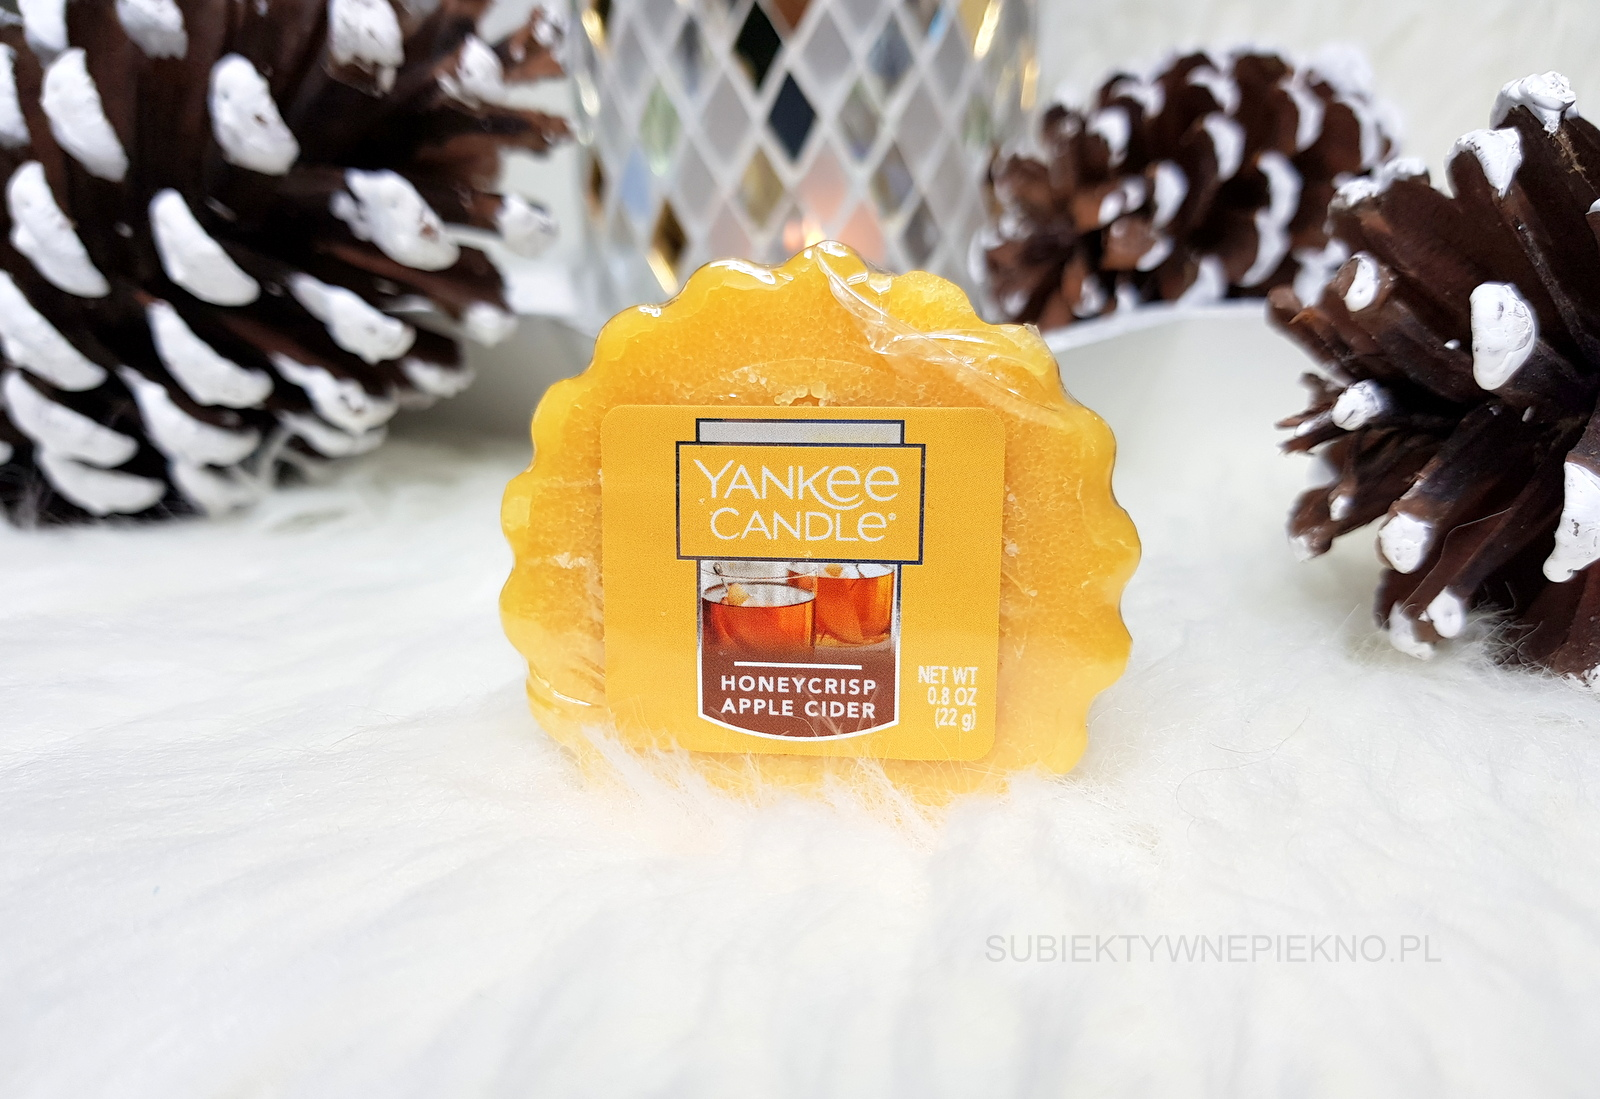 HONEYCRISP APPLE CIDER YANKEE CANDLE